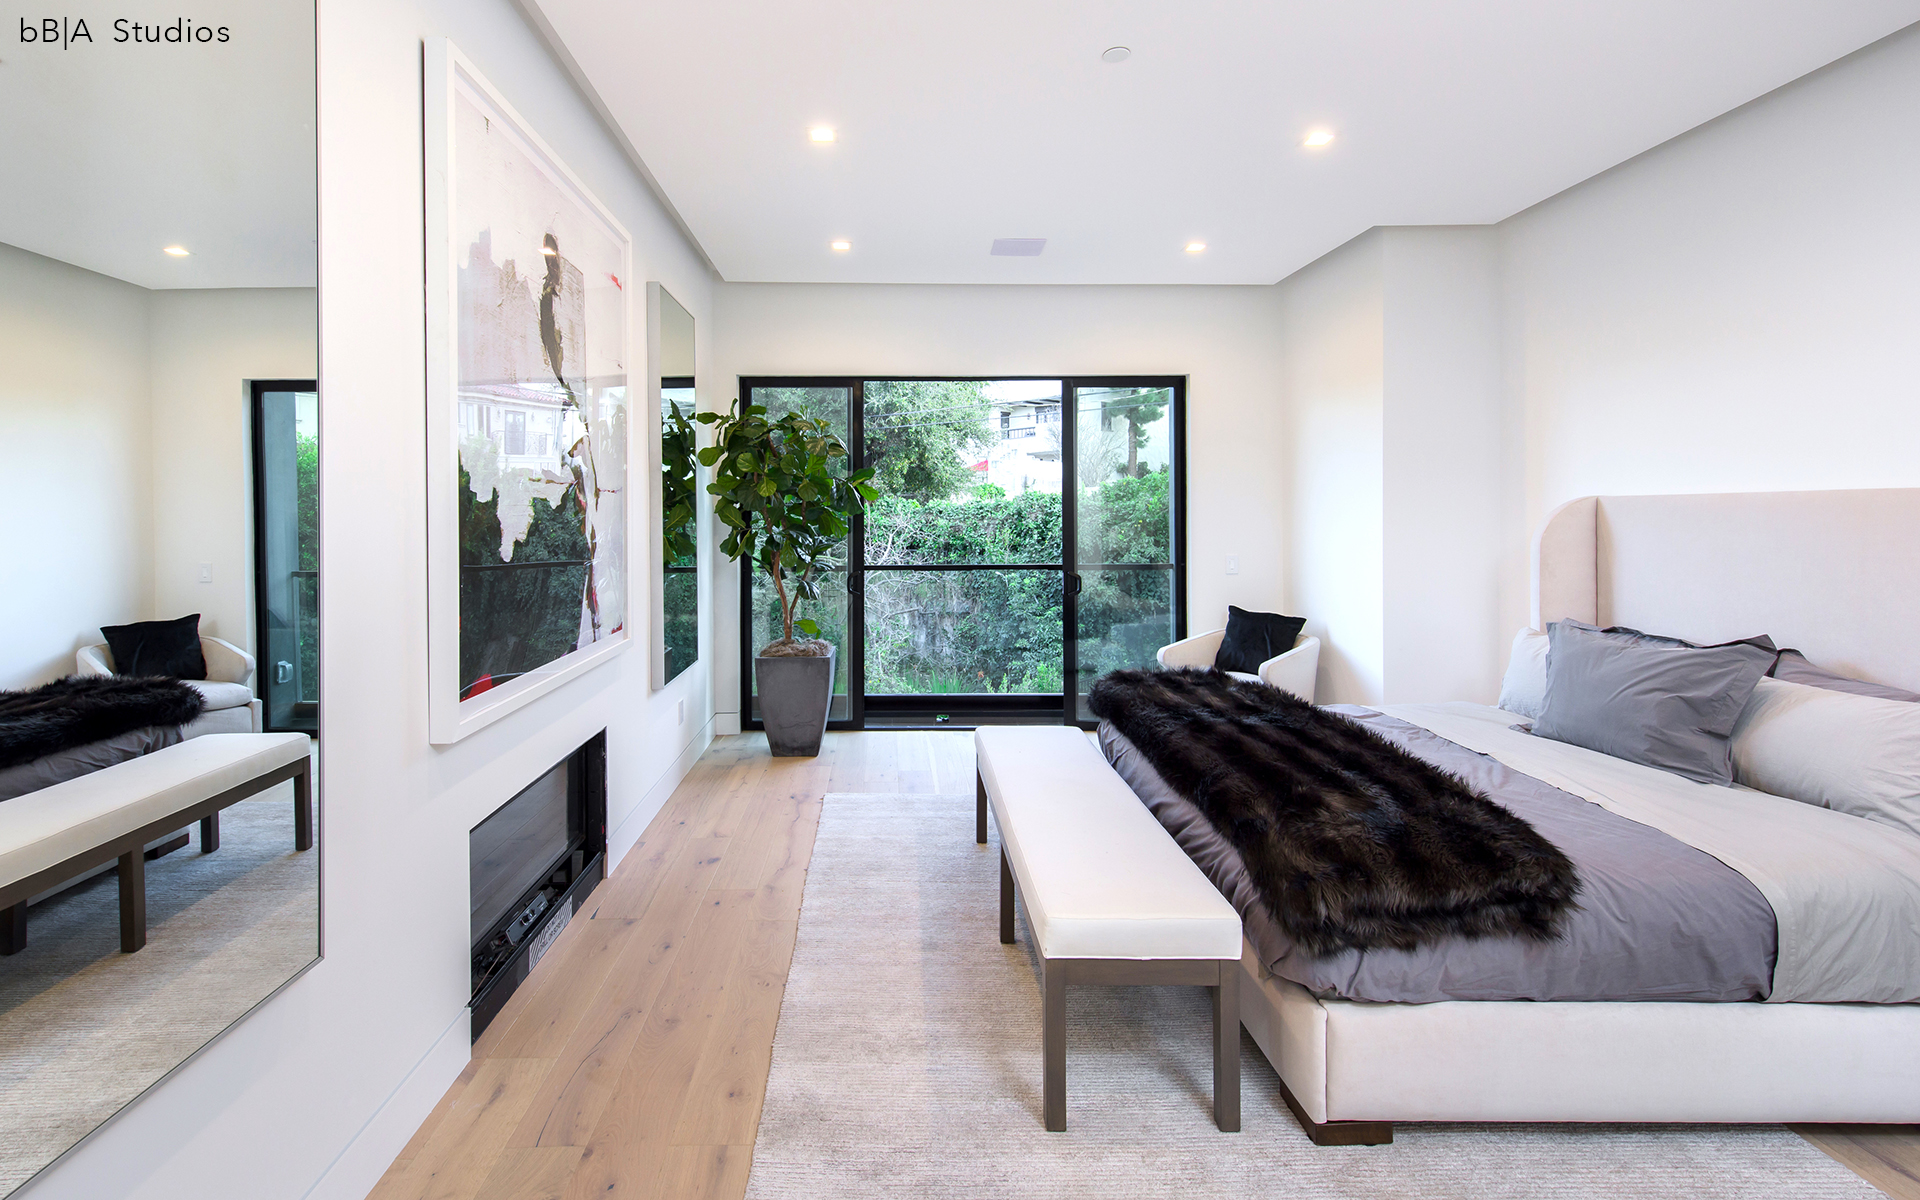 Angled view of Modern Bedroom